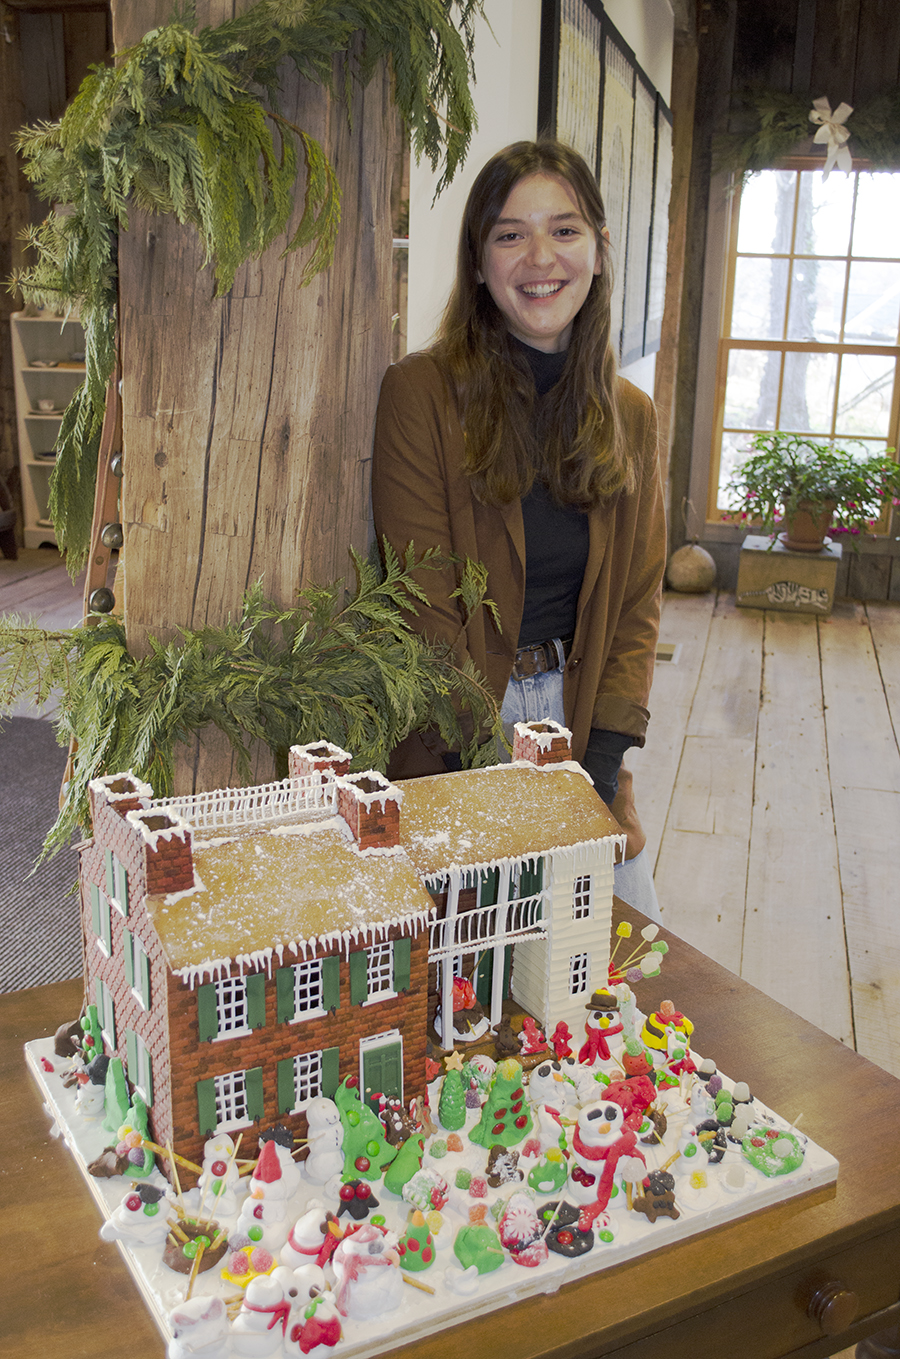 Grad student re-creating the Wylie House in gingerbread